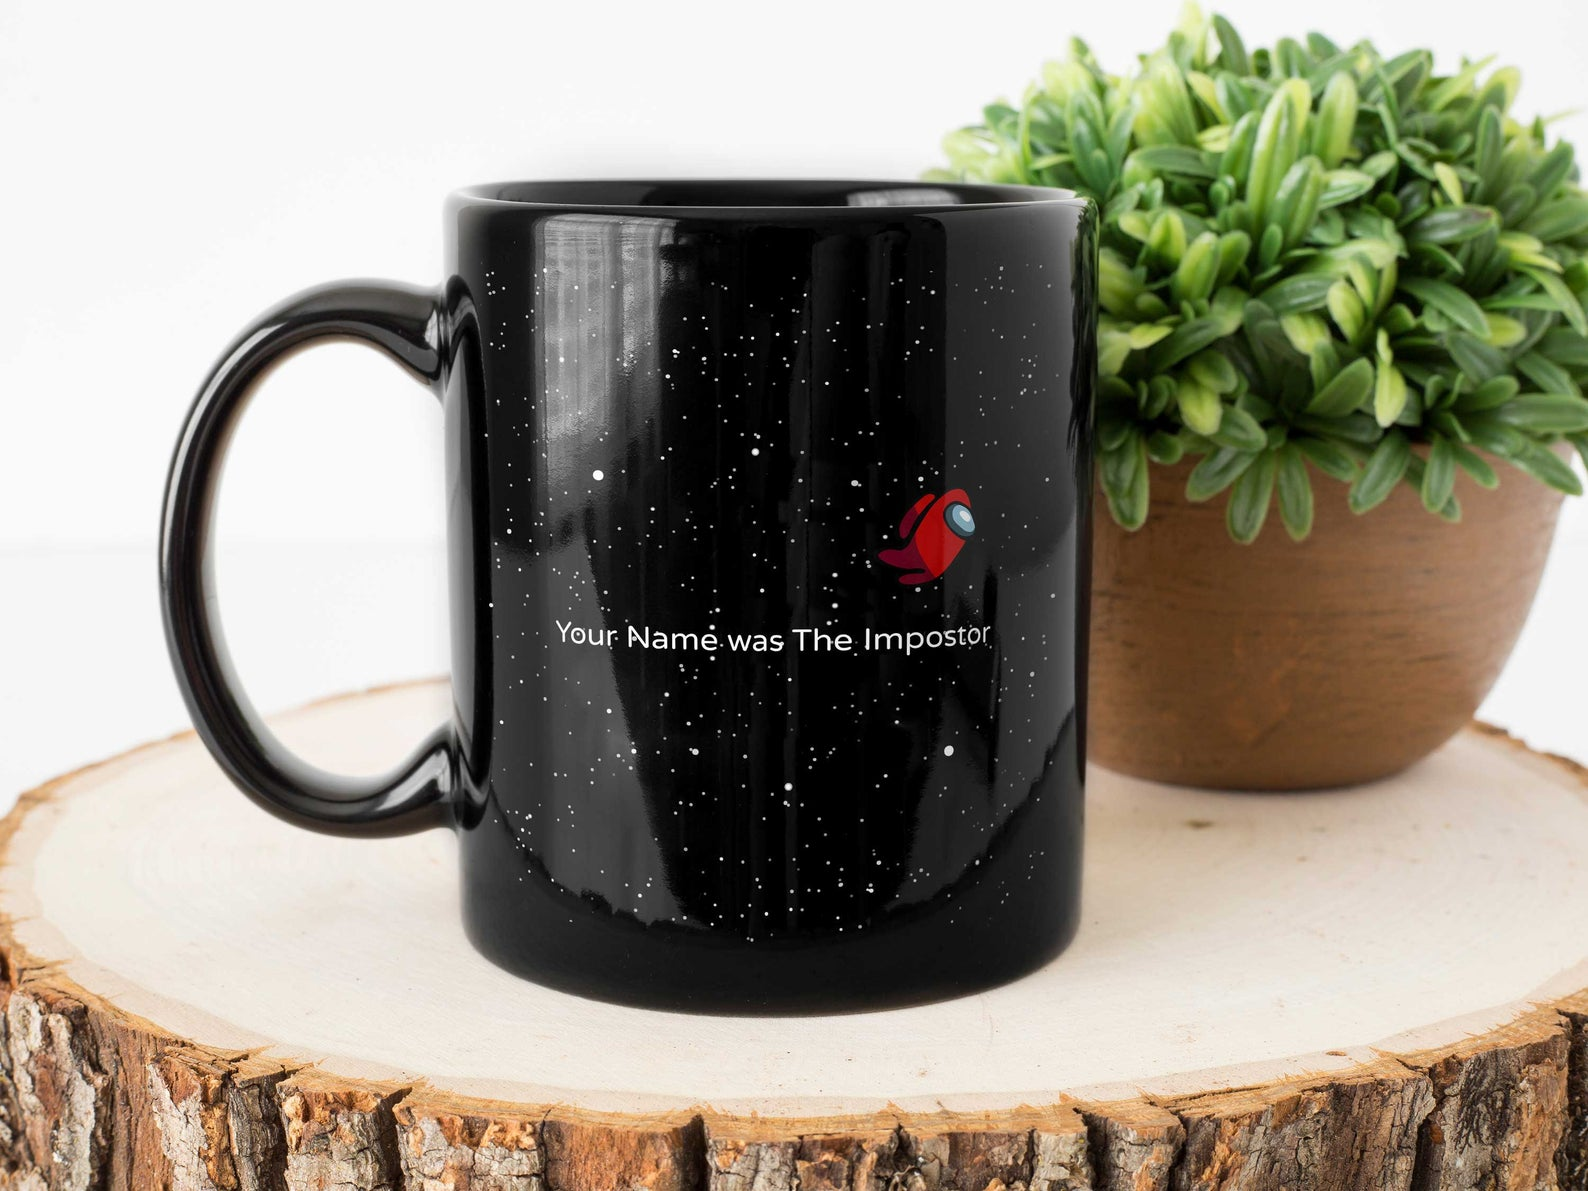 Personalized Among Us Imposter Coffee Mug 'Your Name' Was The Imposter